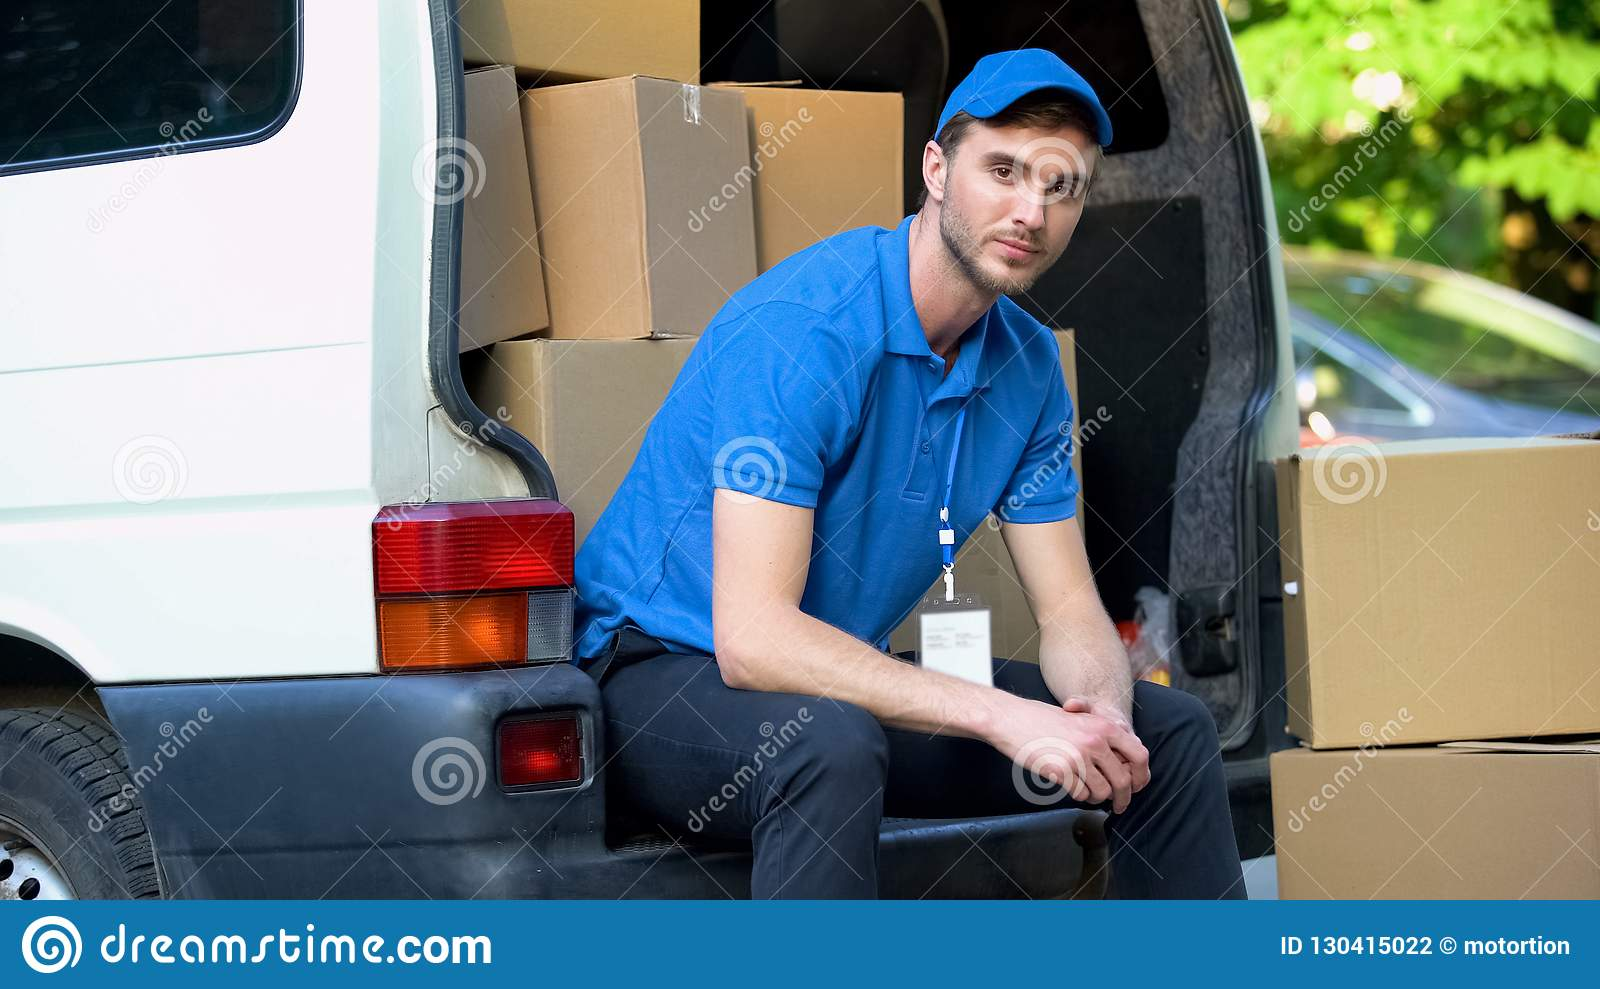 Tired worker of moving company resting, sitting in van full of cardboard boxes